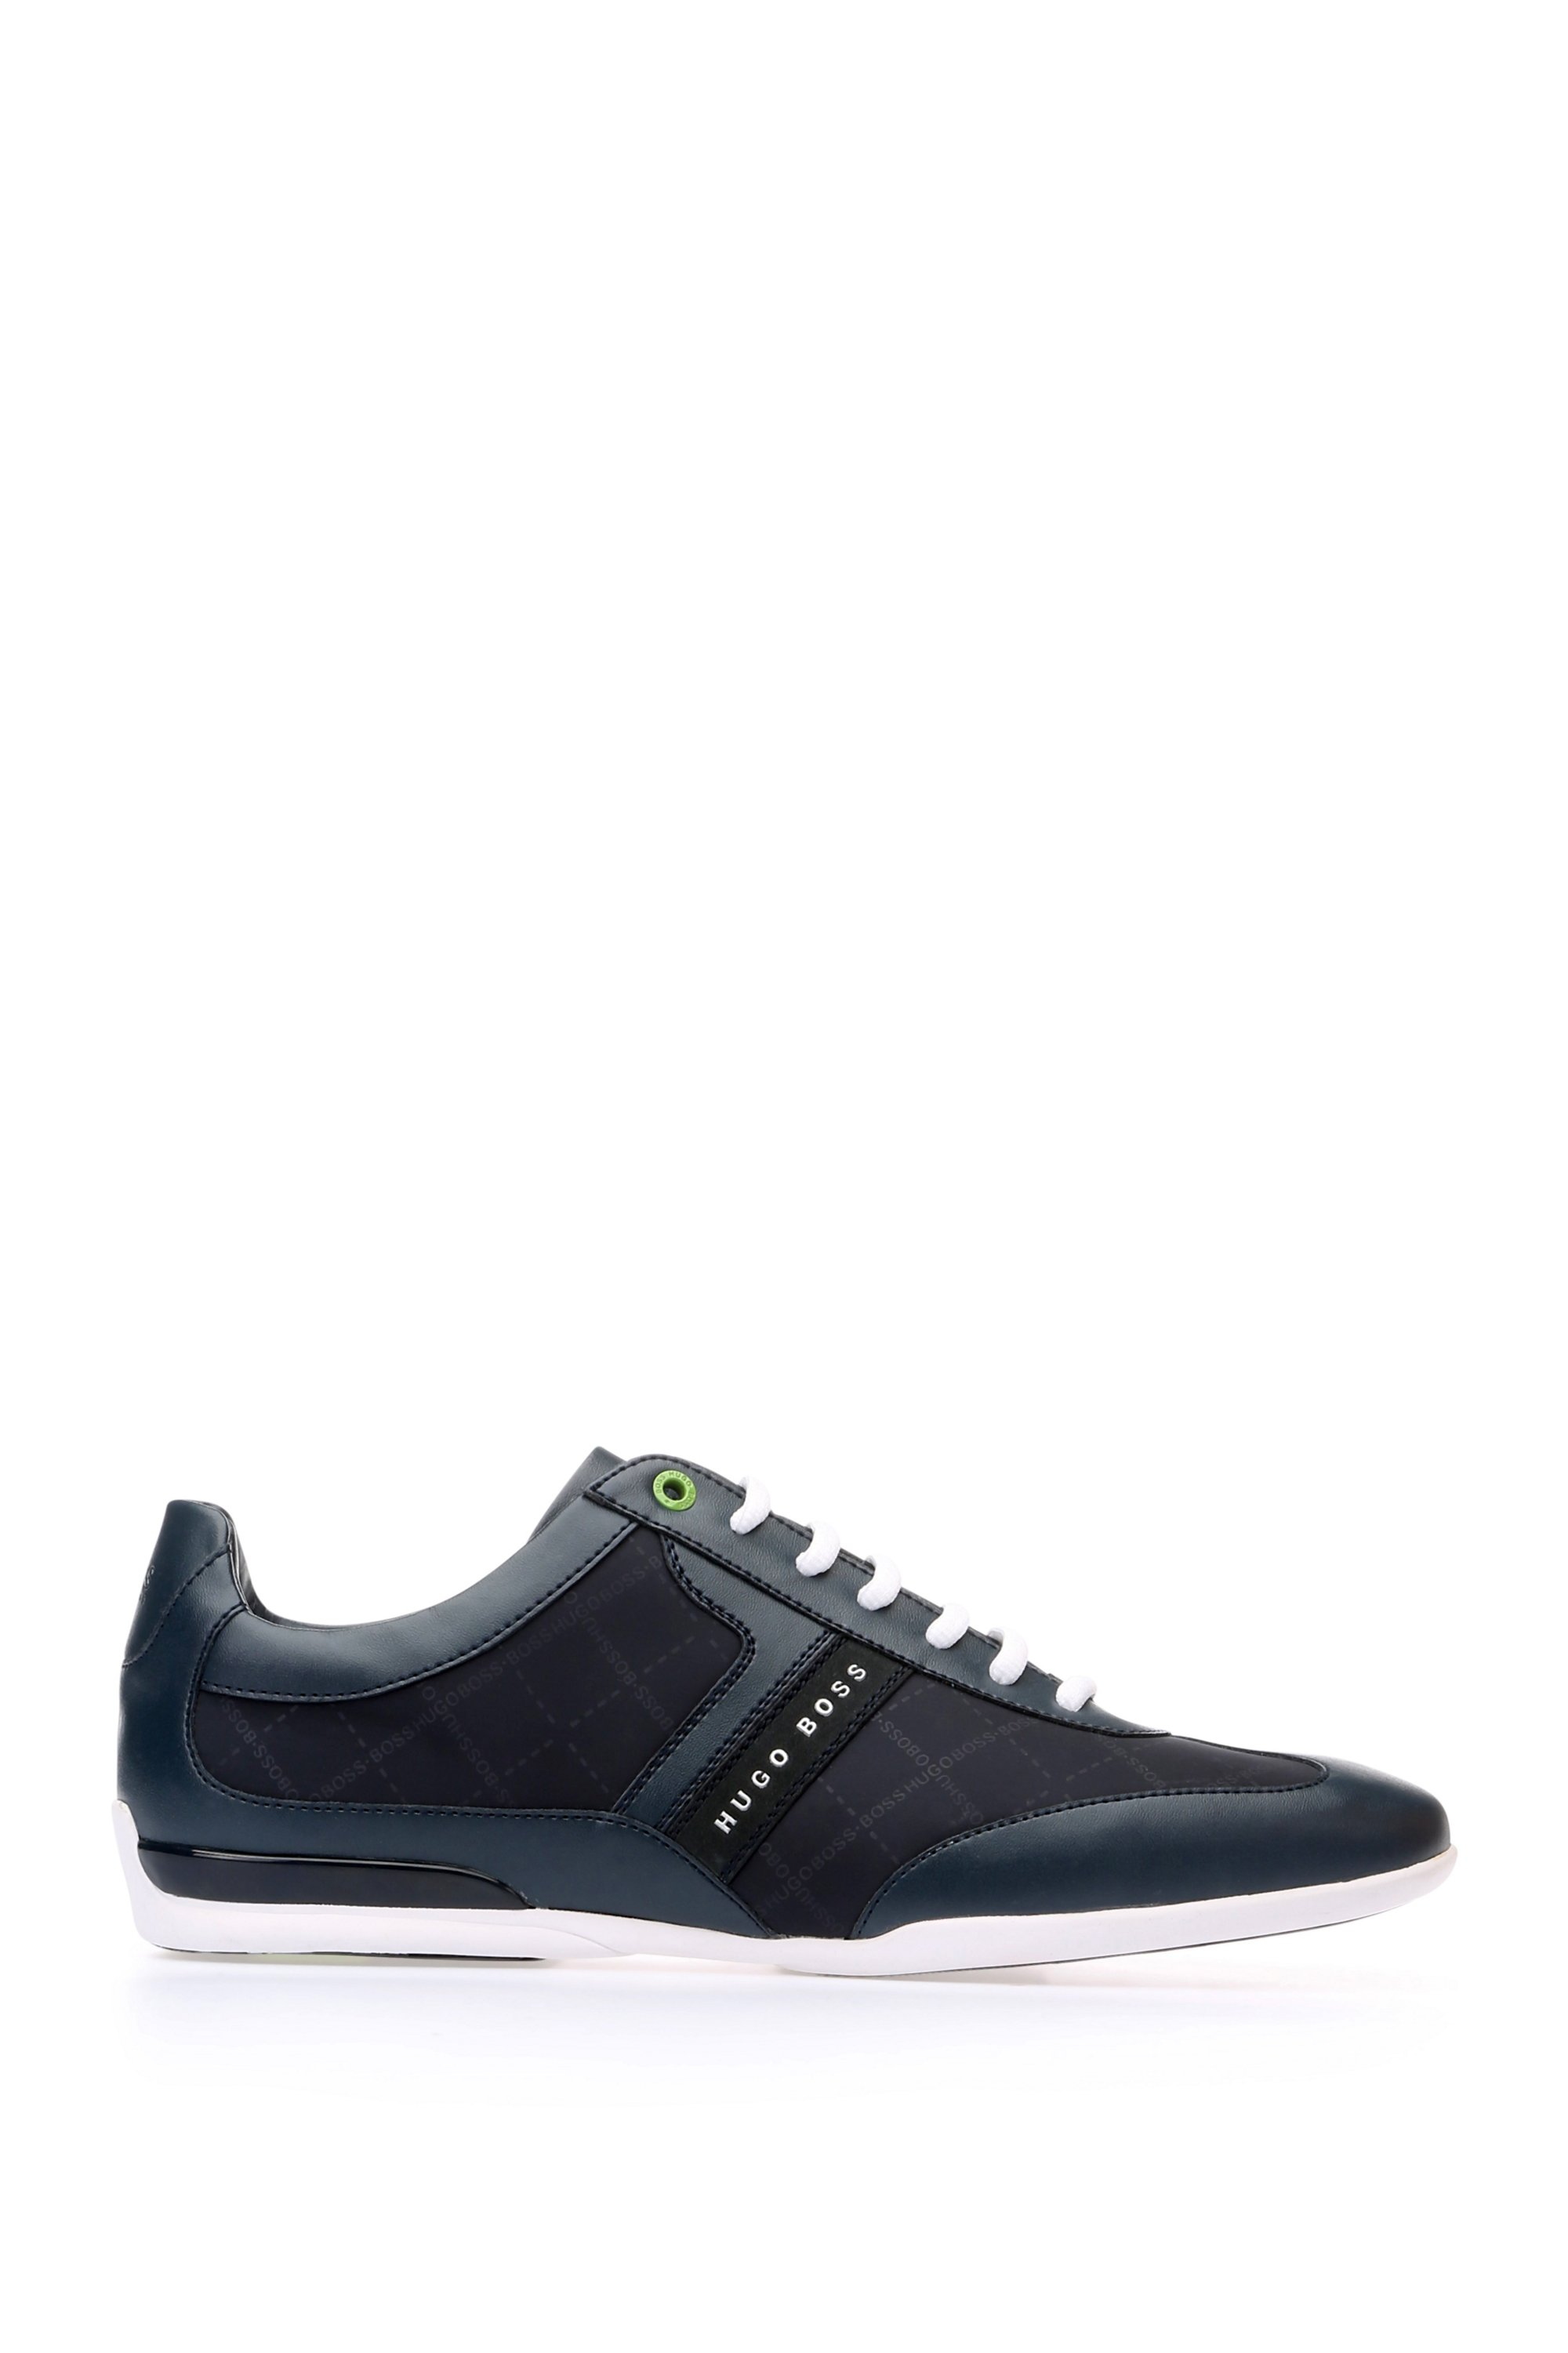 Sneakers low-top stampate con sezioni in pelle, Blu scuro